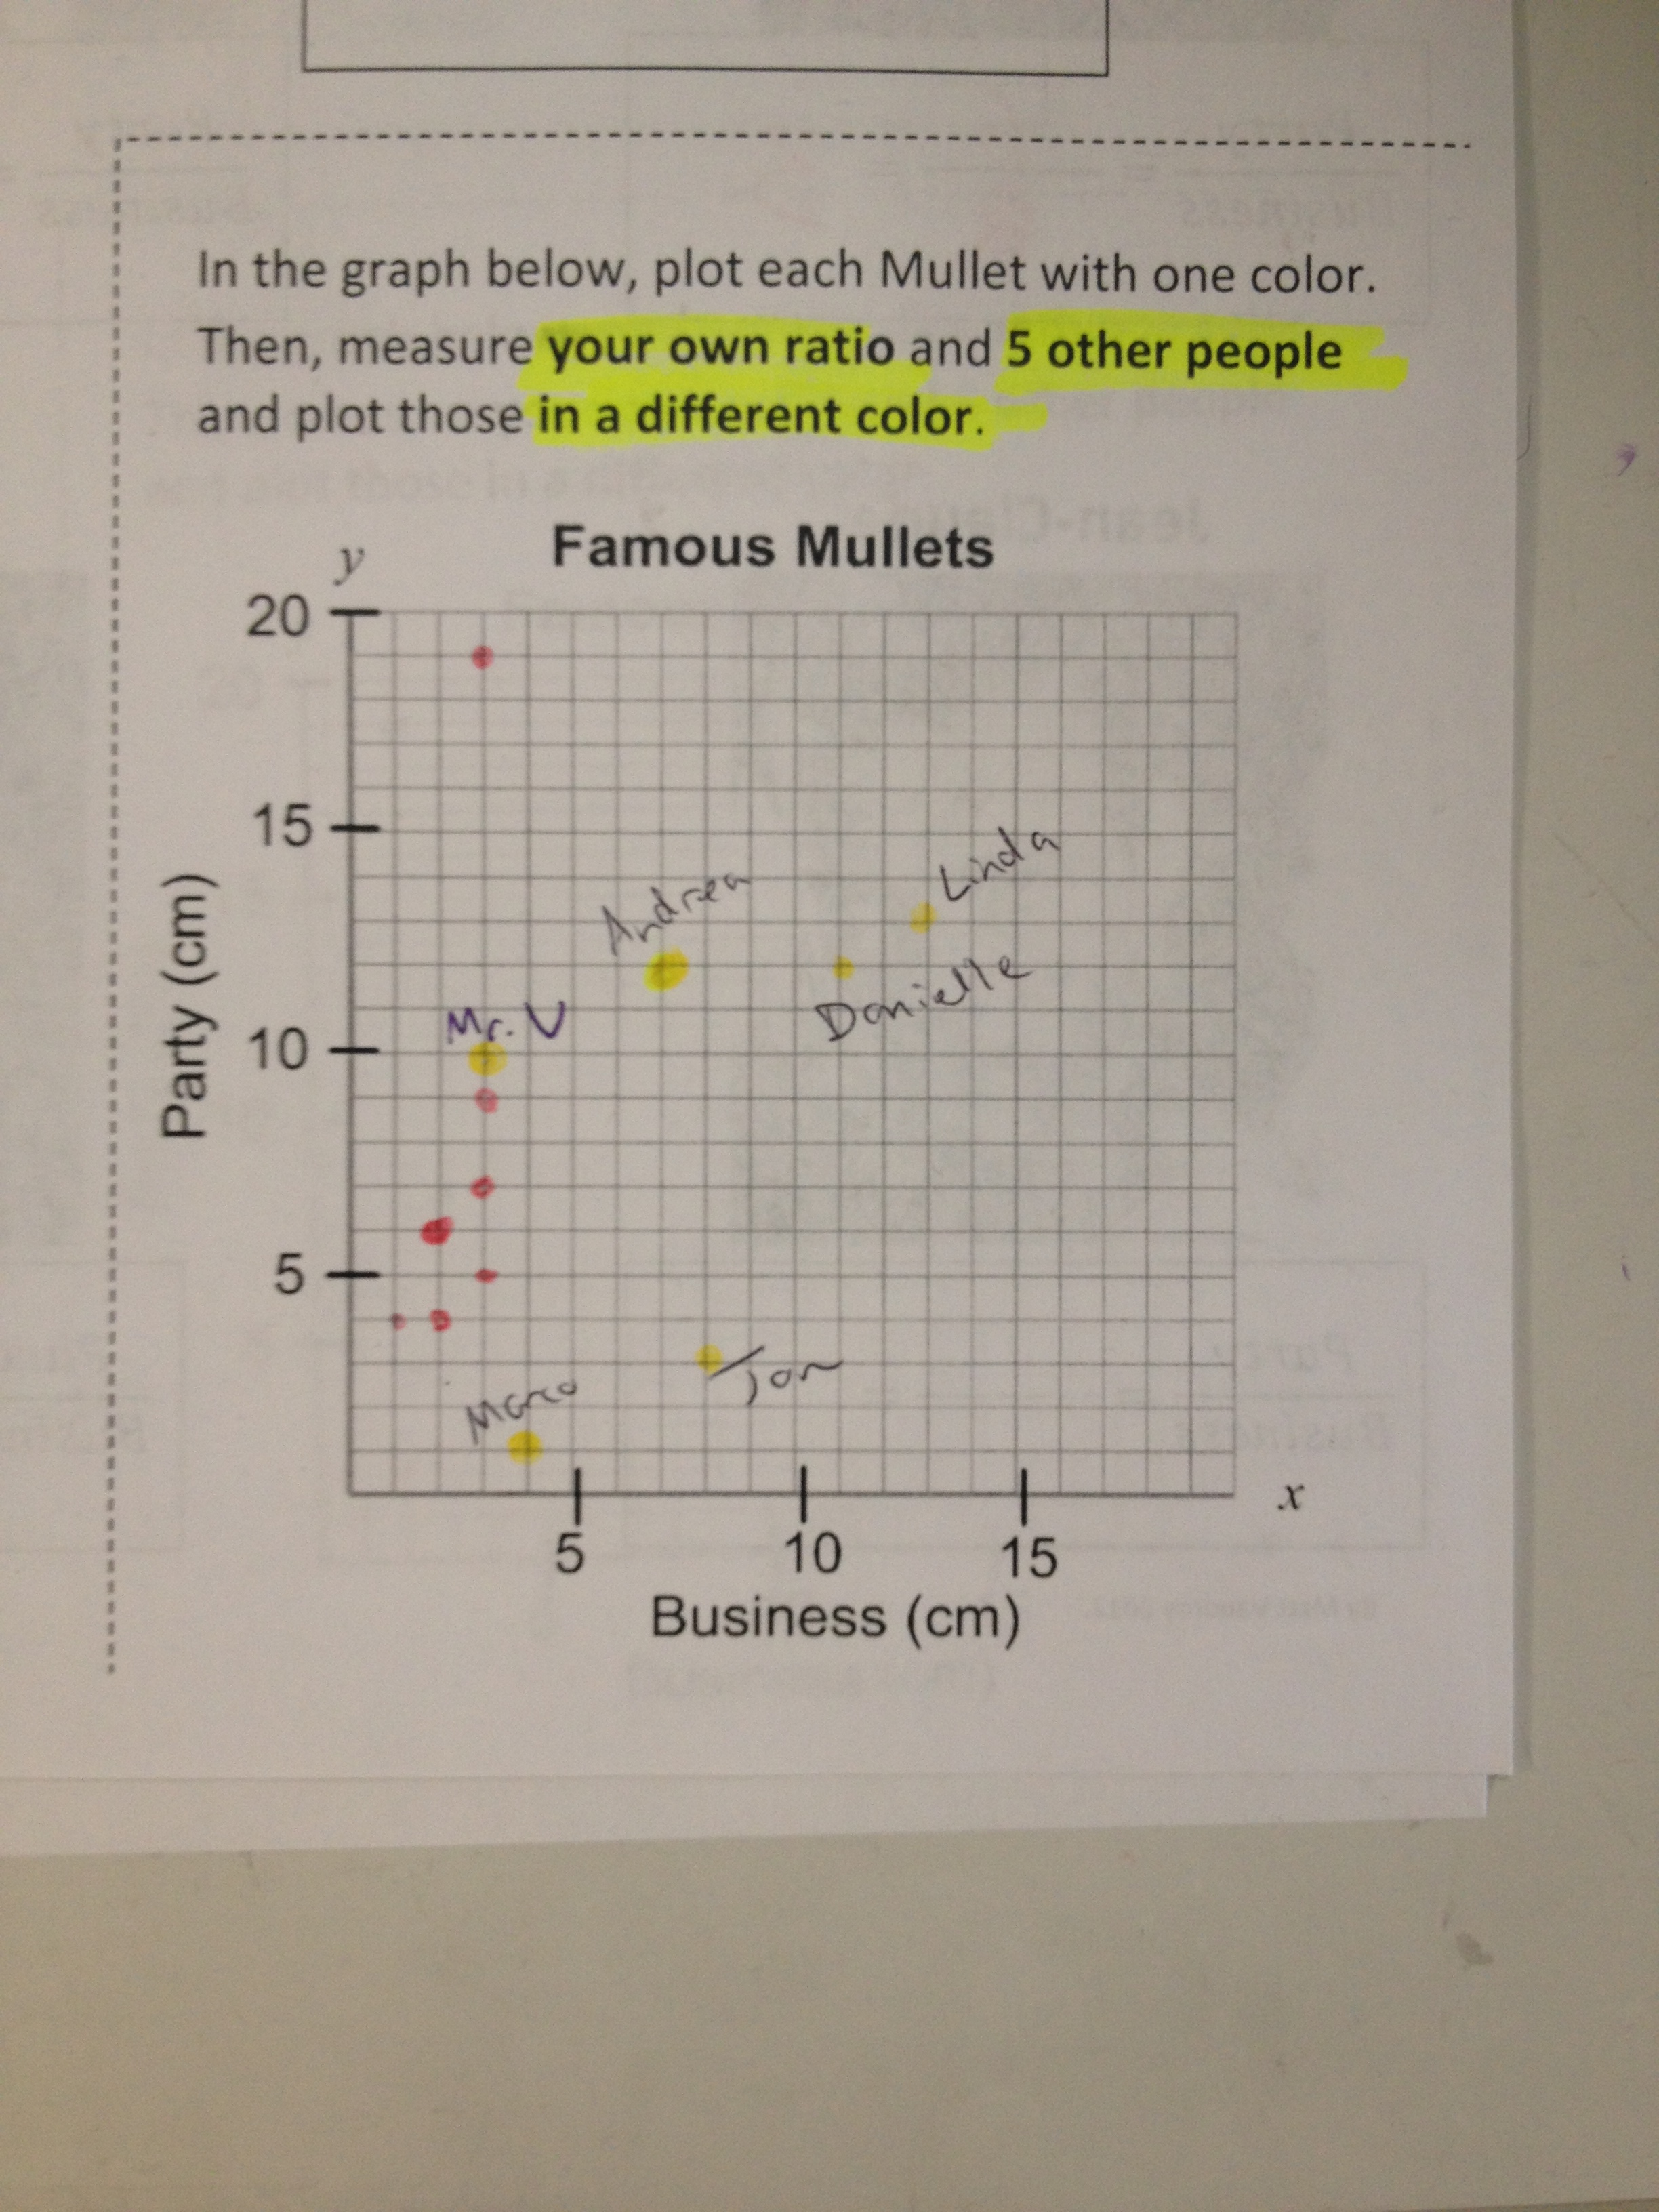 Commas In Direct Address Worksheet Word Mullet Ratio    Matt Vaudrey The Brain Worksheets with Dot To Dot Worksheets Free After That They Measure Their Own Ratio And The Ratio Of  Other People  And Plot Them Too Free Printable Preschool Cut And Paste Worksheets Word